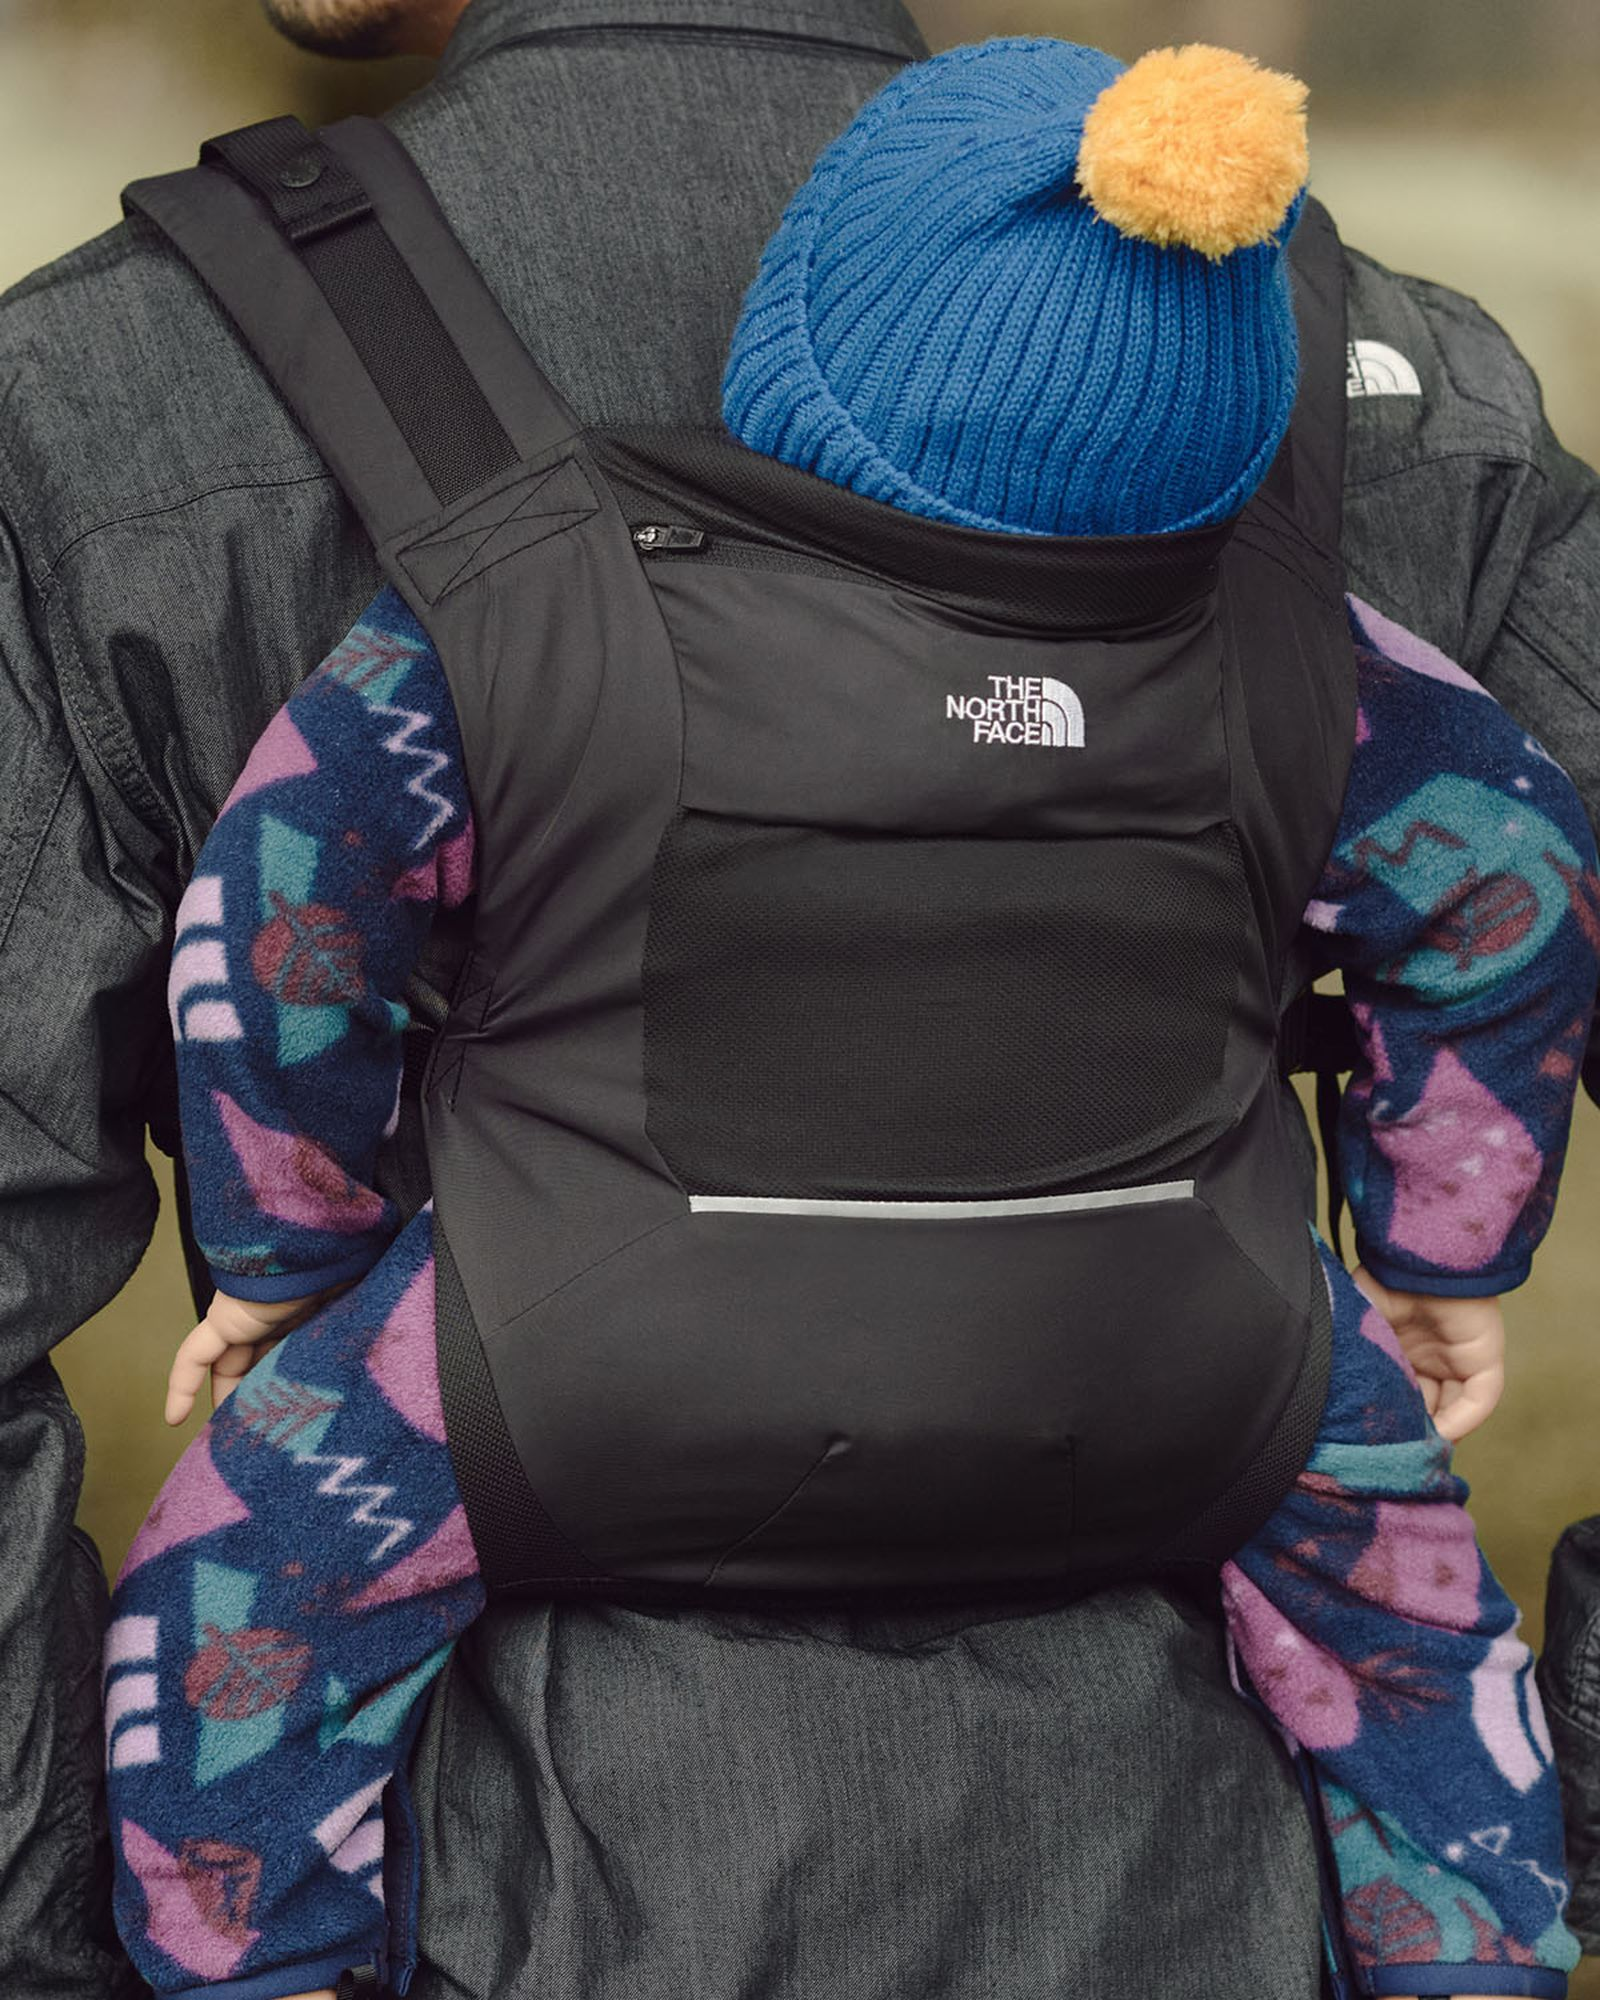 the-north-face-baby-carrier-01